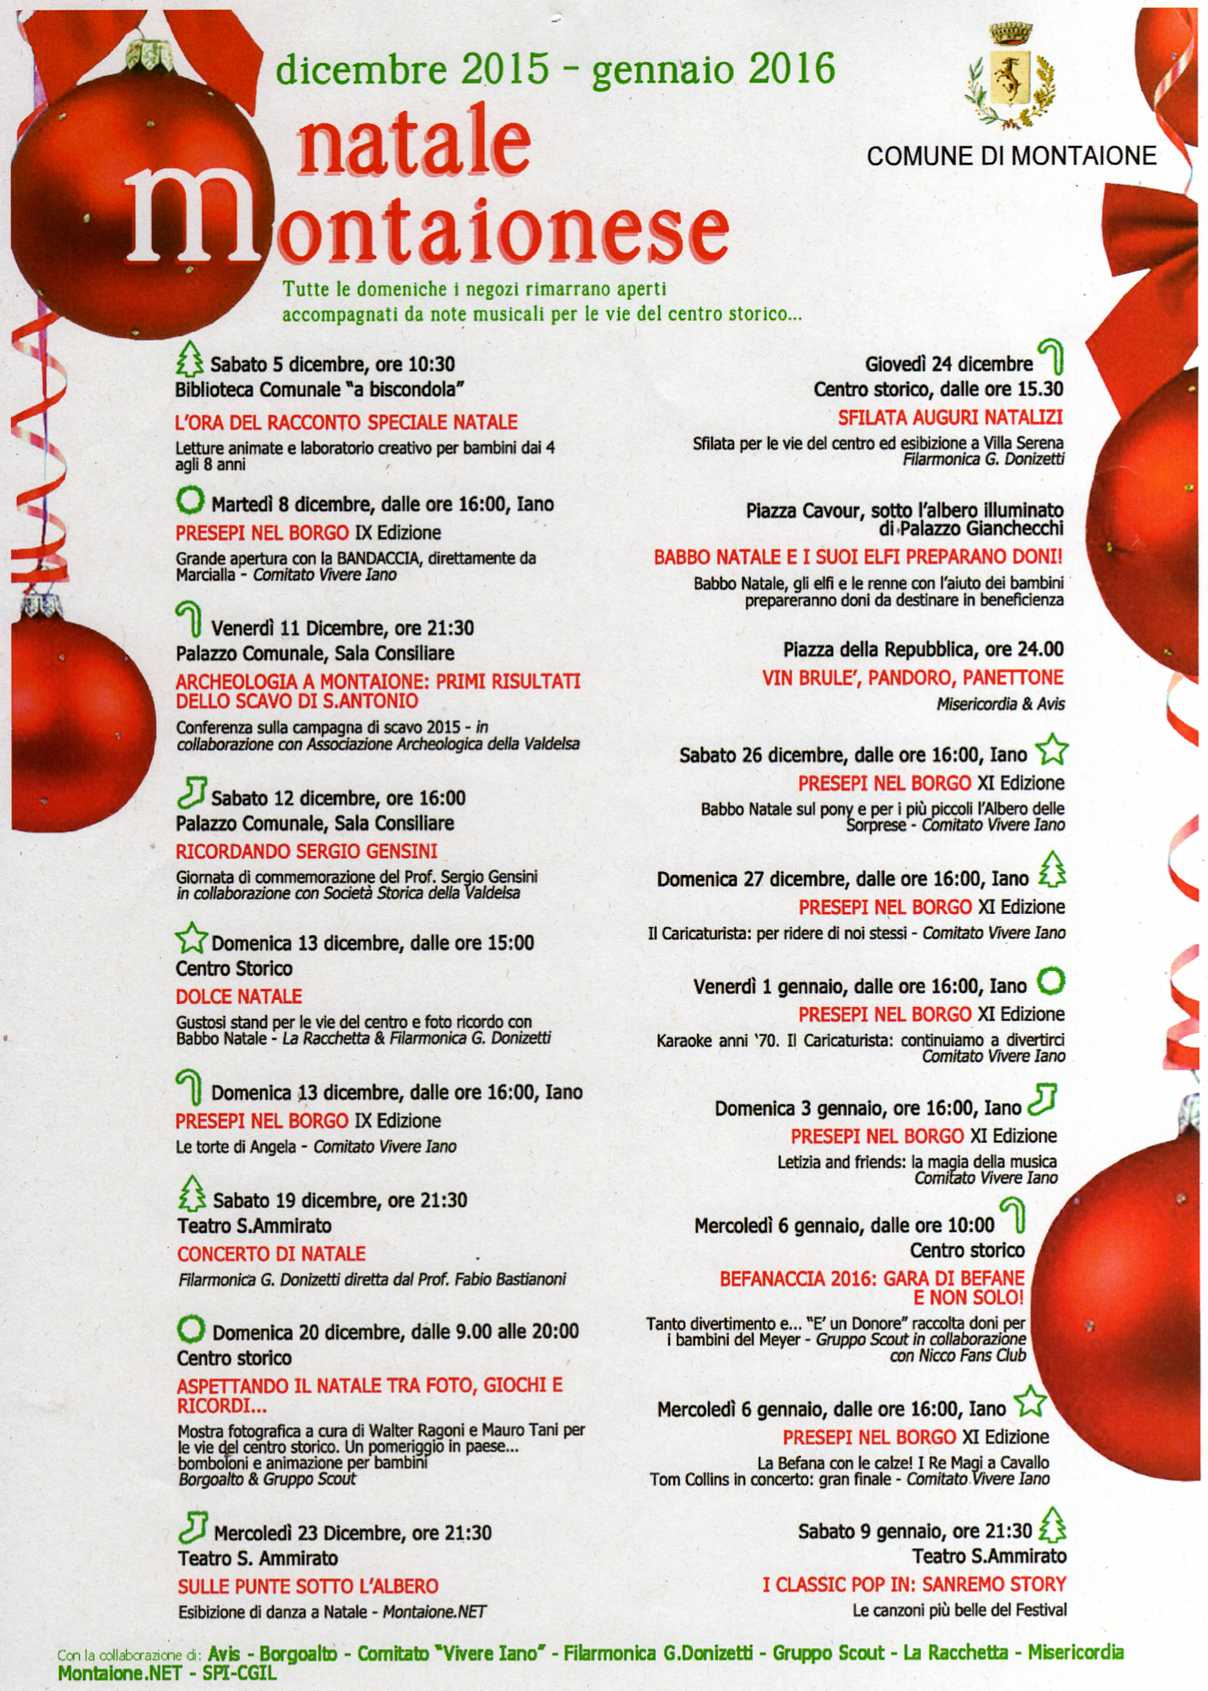 Natale montaionese 2015